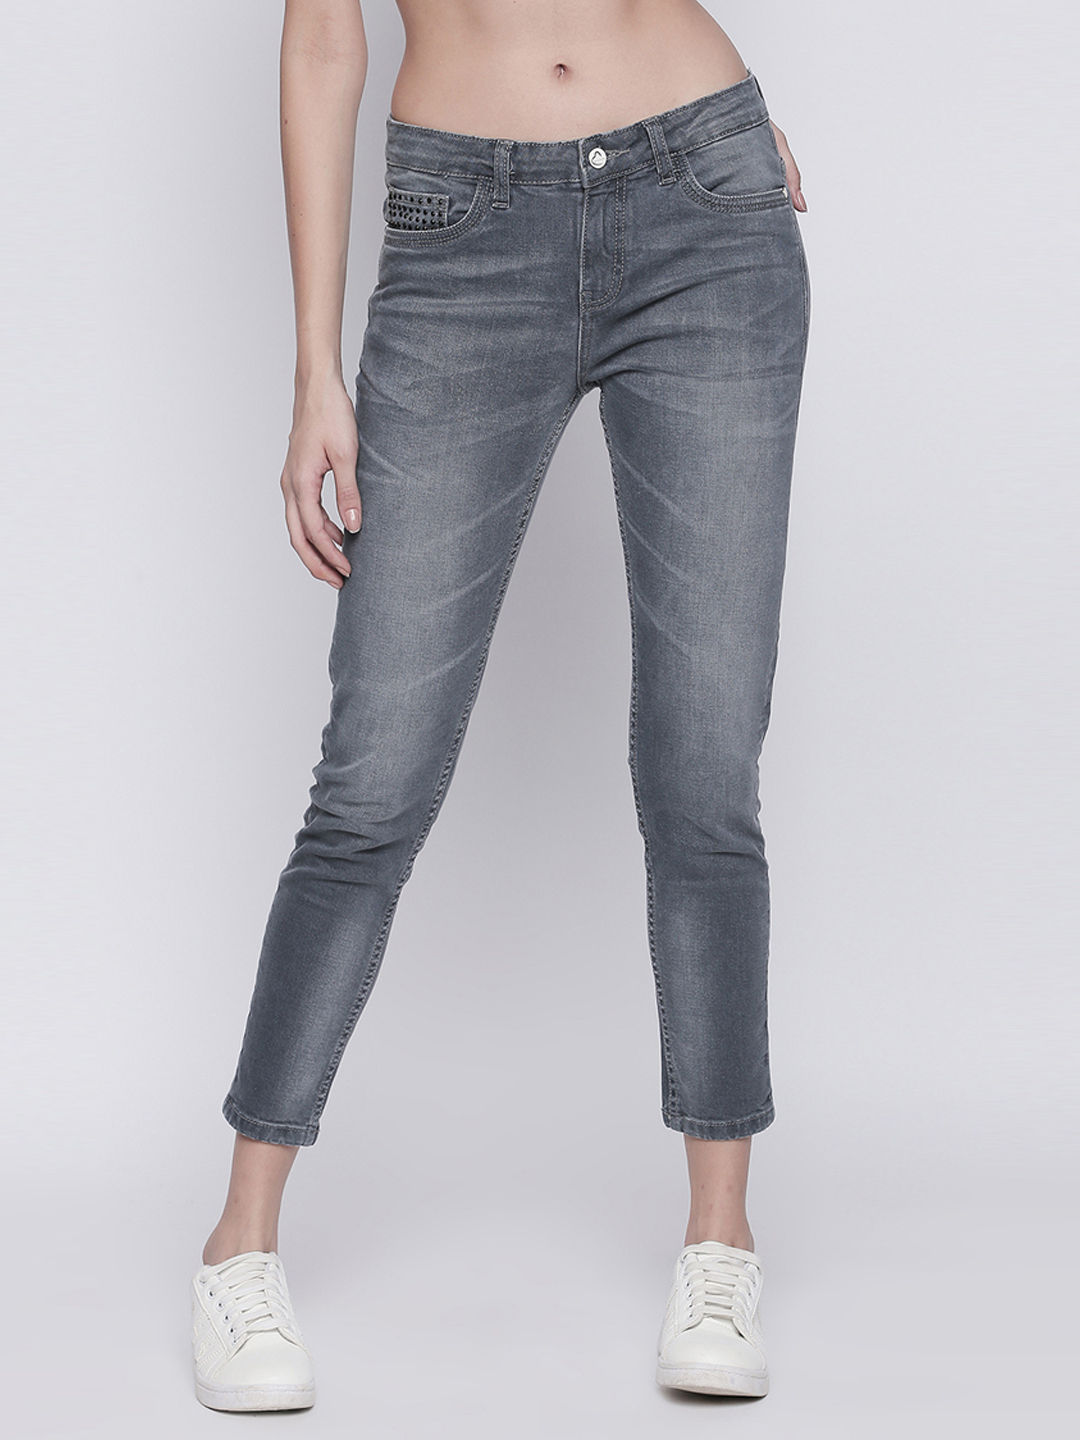 GREY SOLID CROPPED JEANS